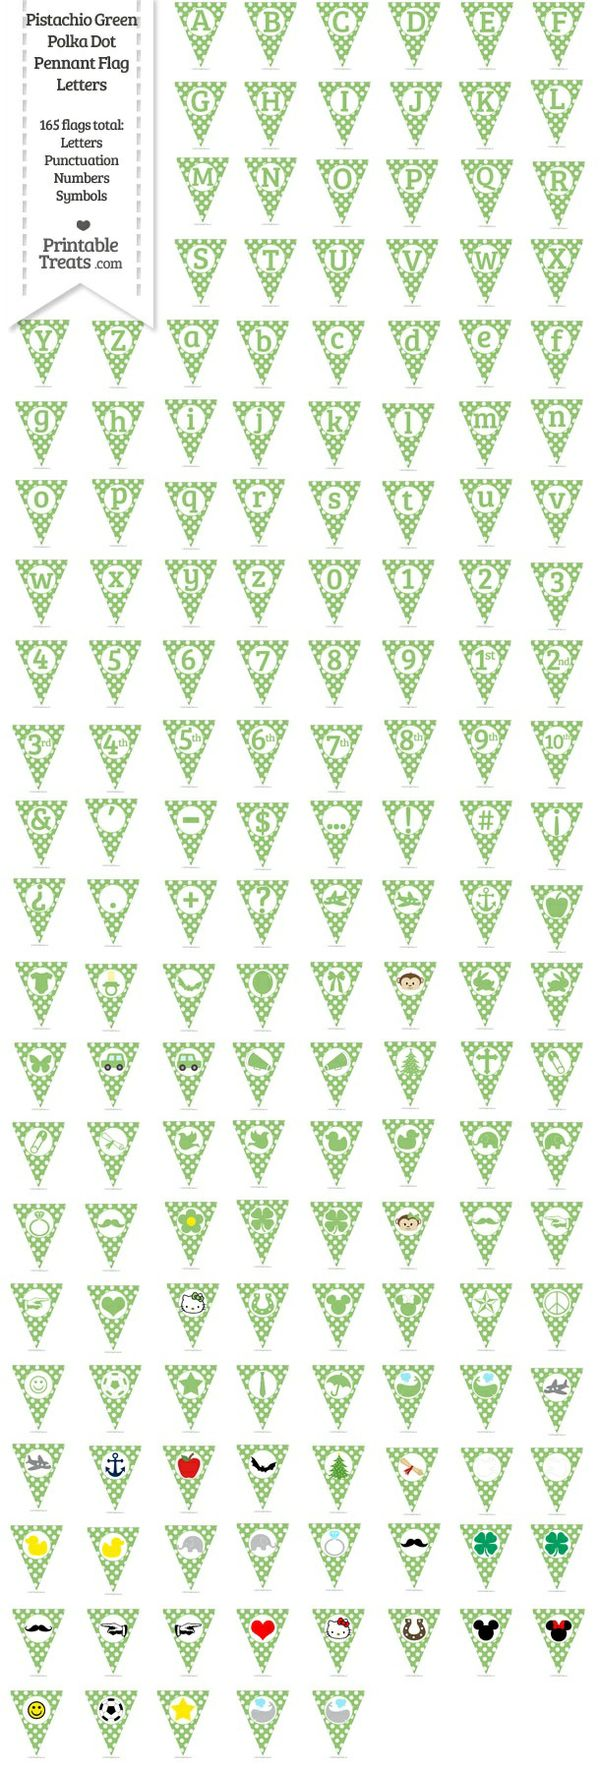 165 Pistachio Green Polka Dot Pennant Flag Letters Password